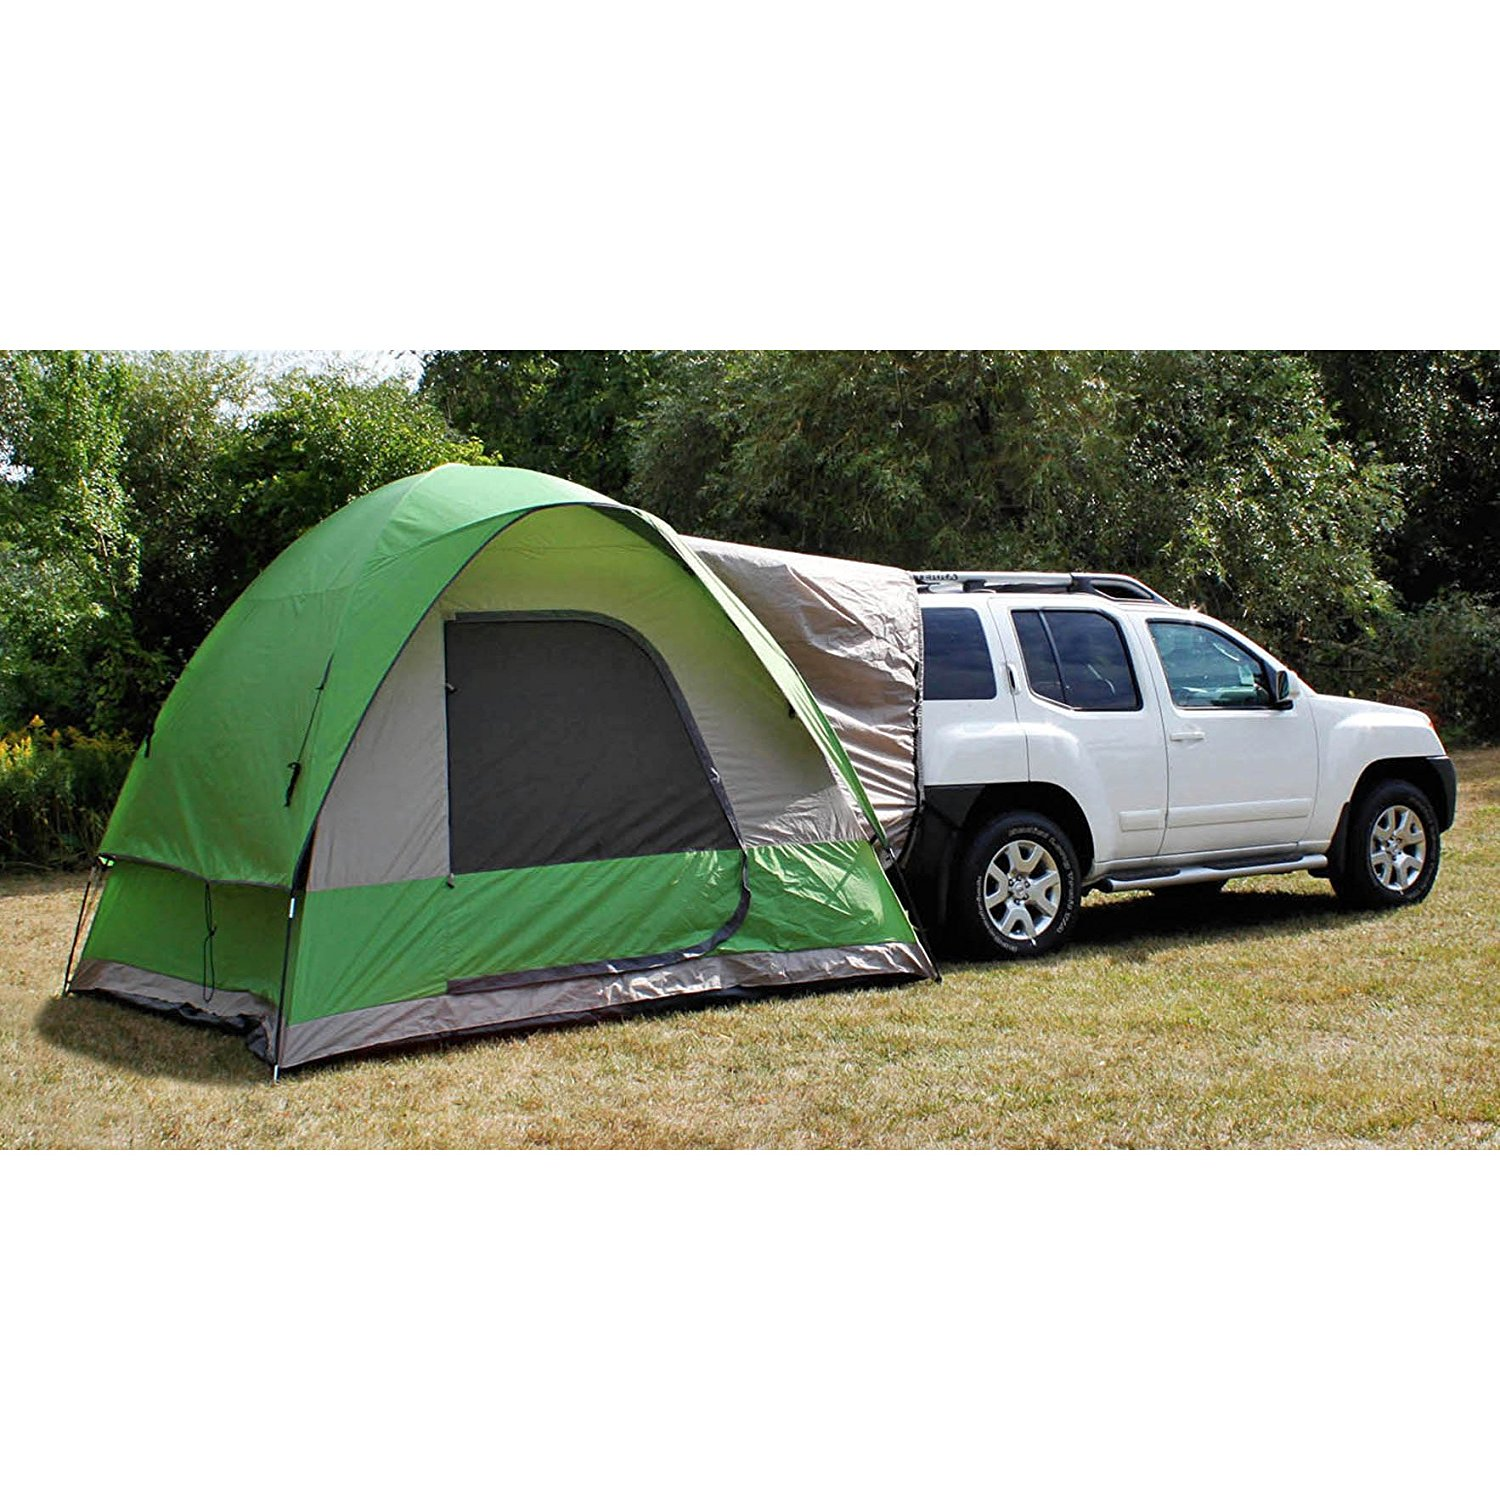 Cheap Suv Hatch Tent Find Suv Hatch Tent Deals On Line At Alibaba Com